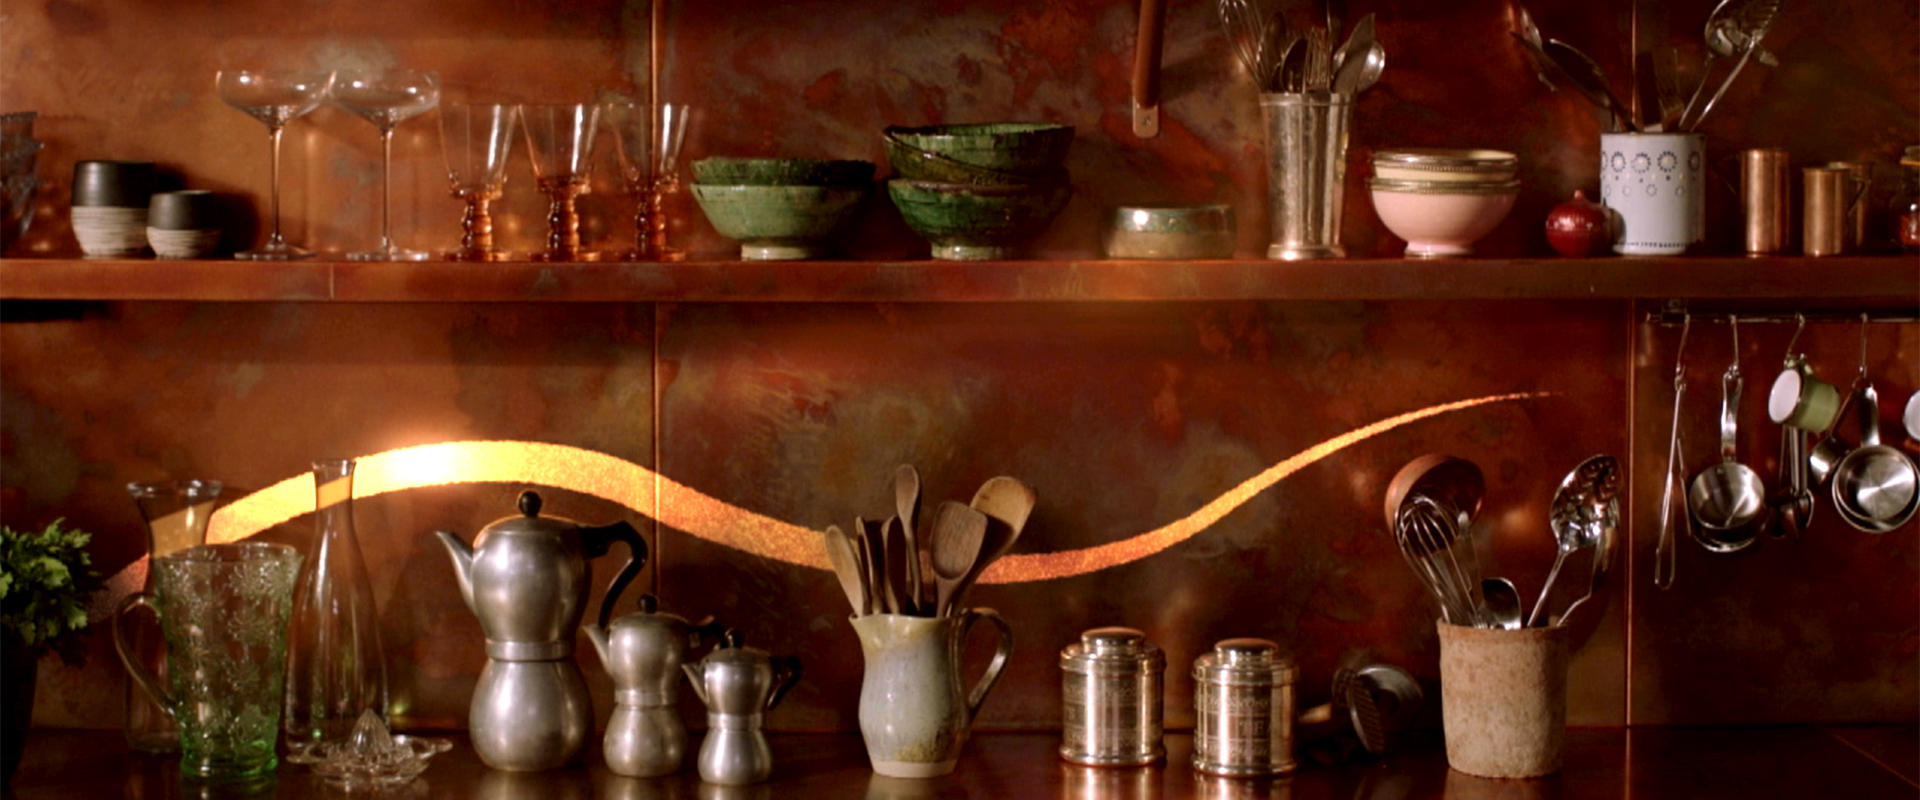 Bespoke Fully Fitted Copper Kitchen